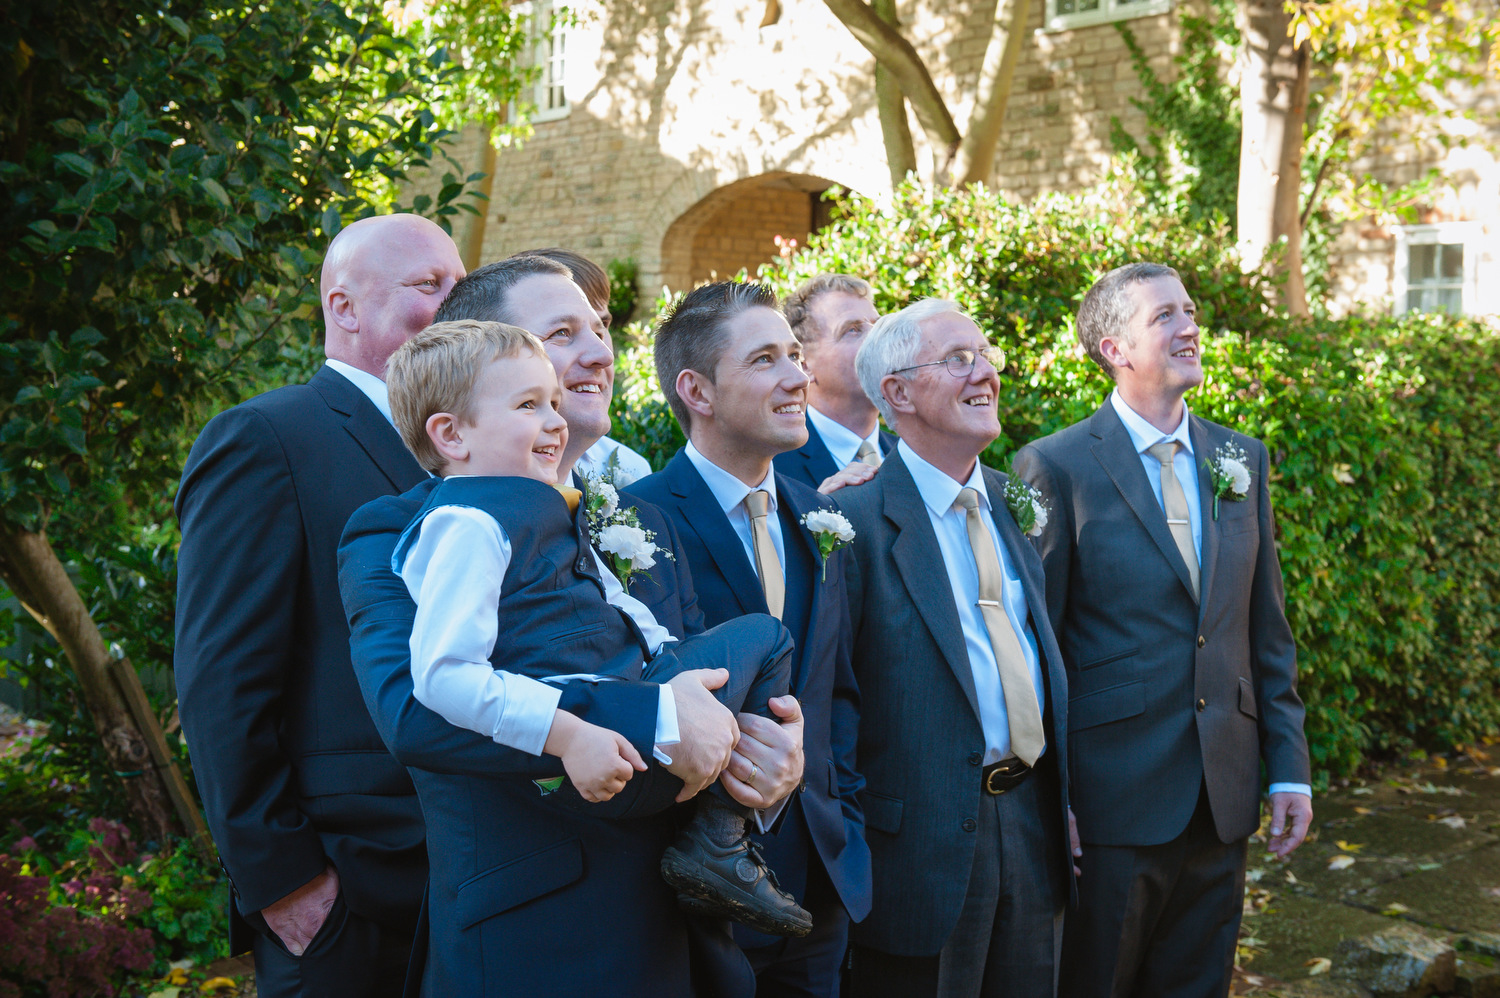 charnwood_weddings_barnsdale_lodge_rutland_dave_j105ane.JPG